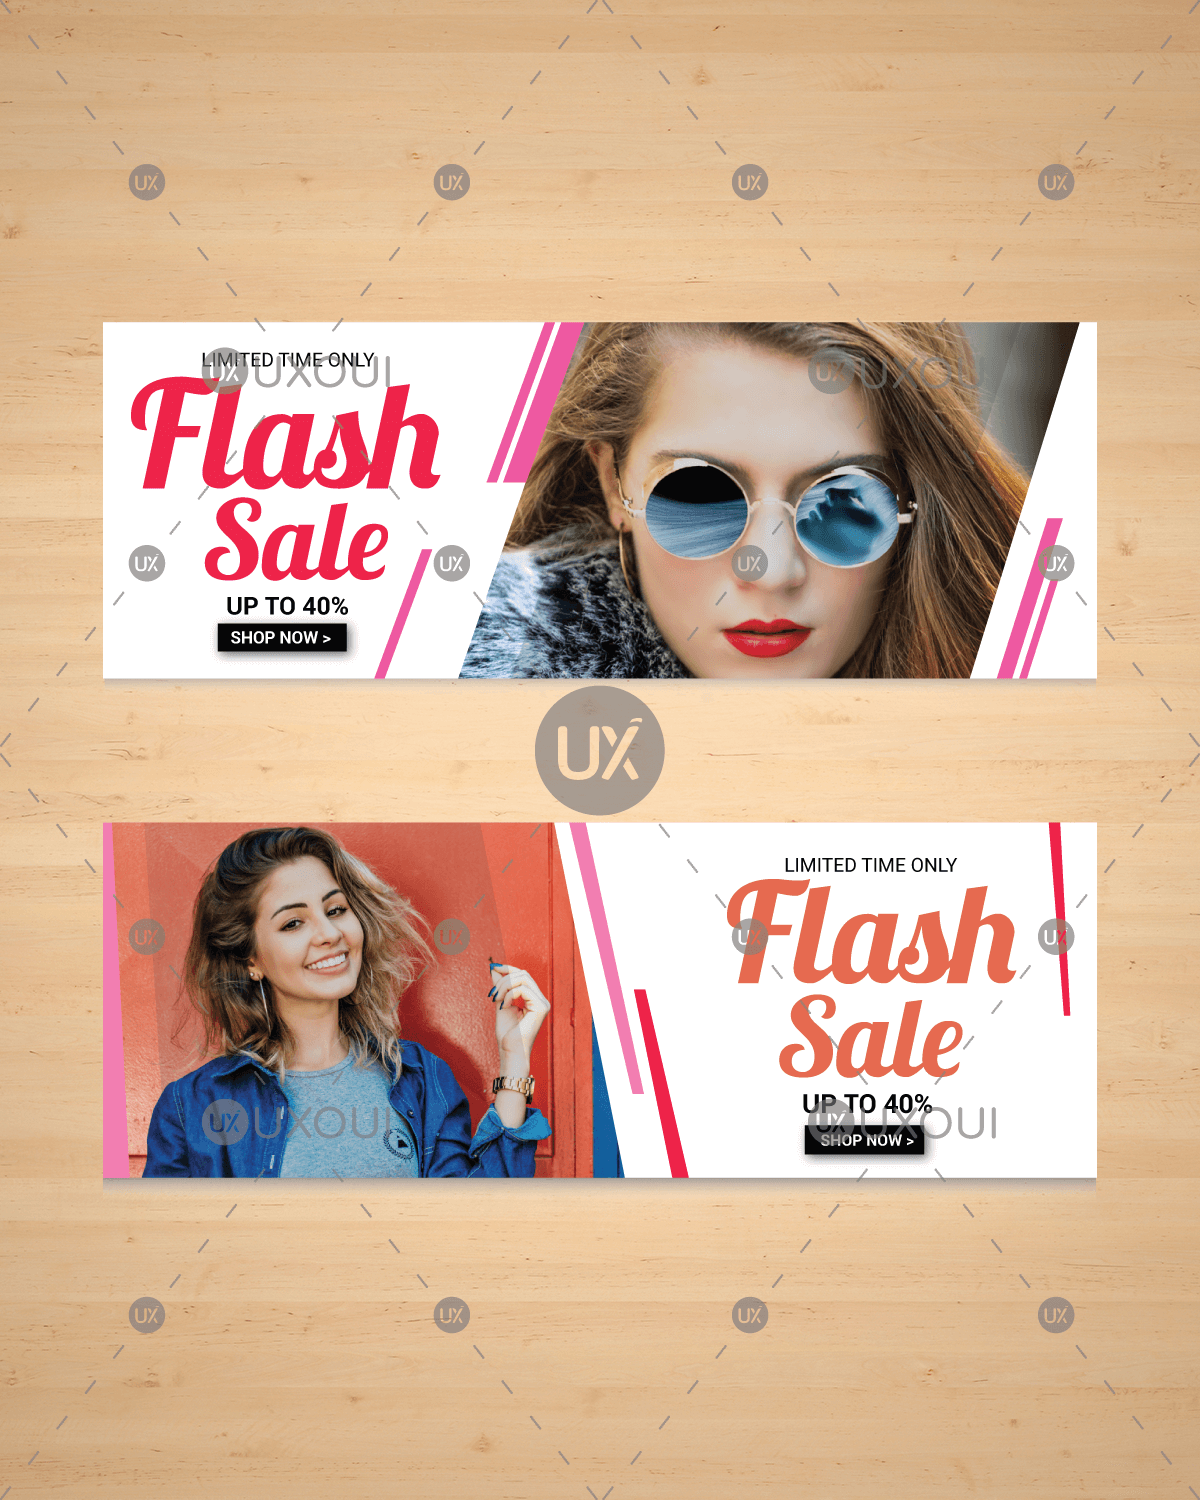 Free Modern Fashion Ad Web Banner Design Template With Photo Vector Uxoui